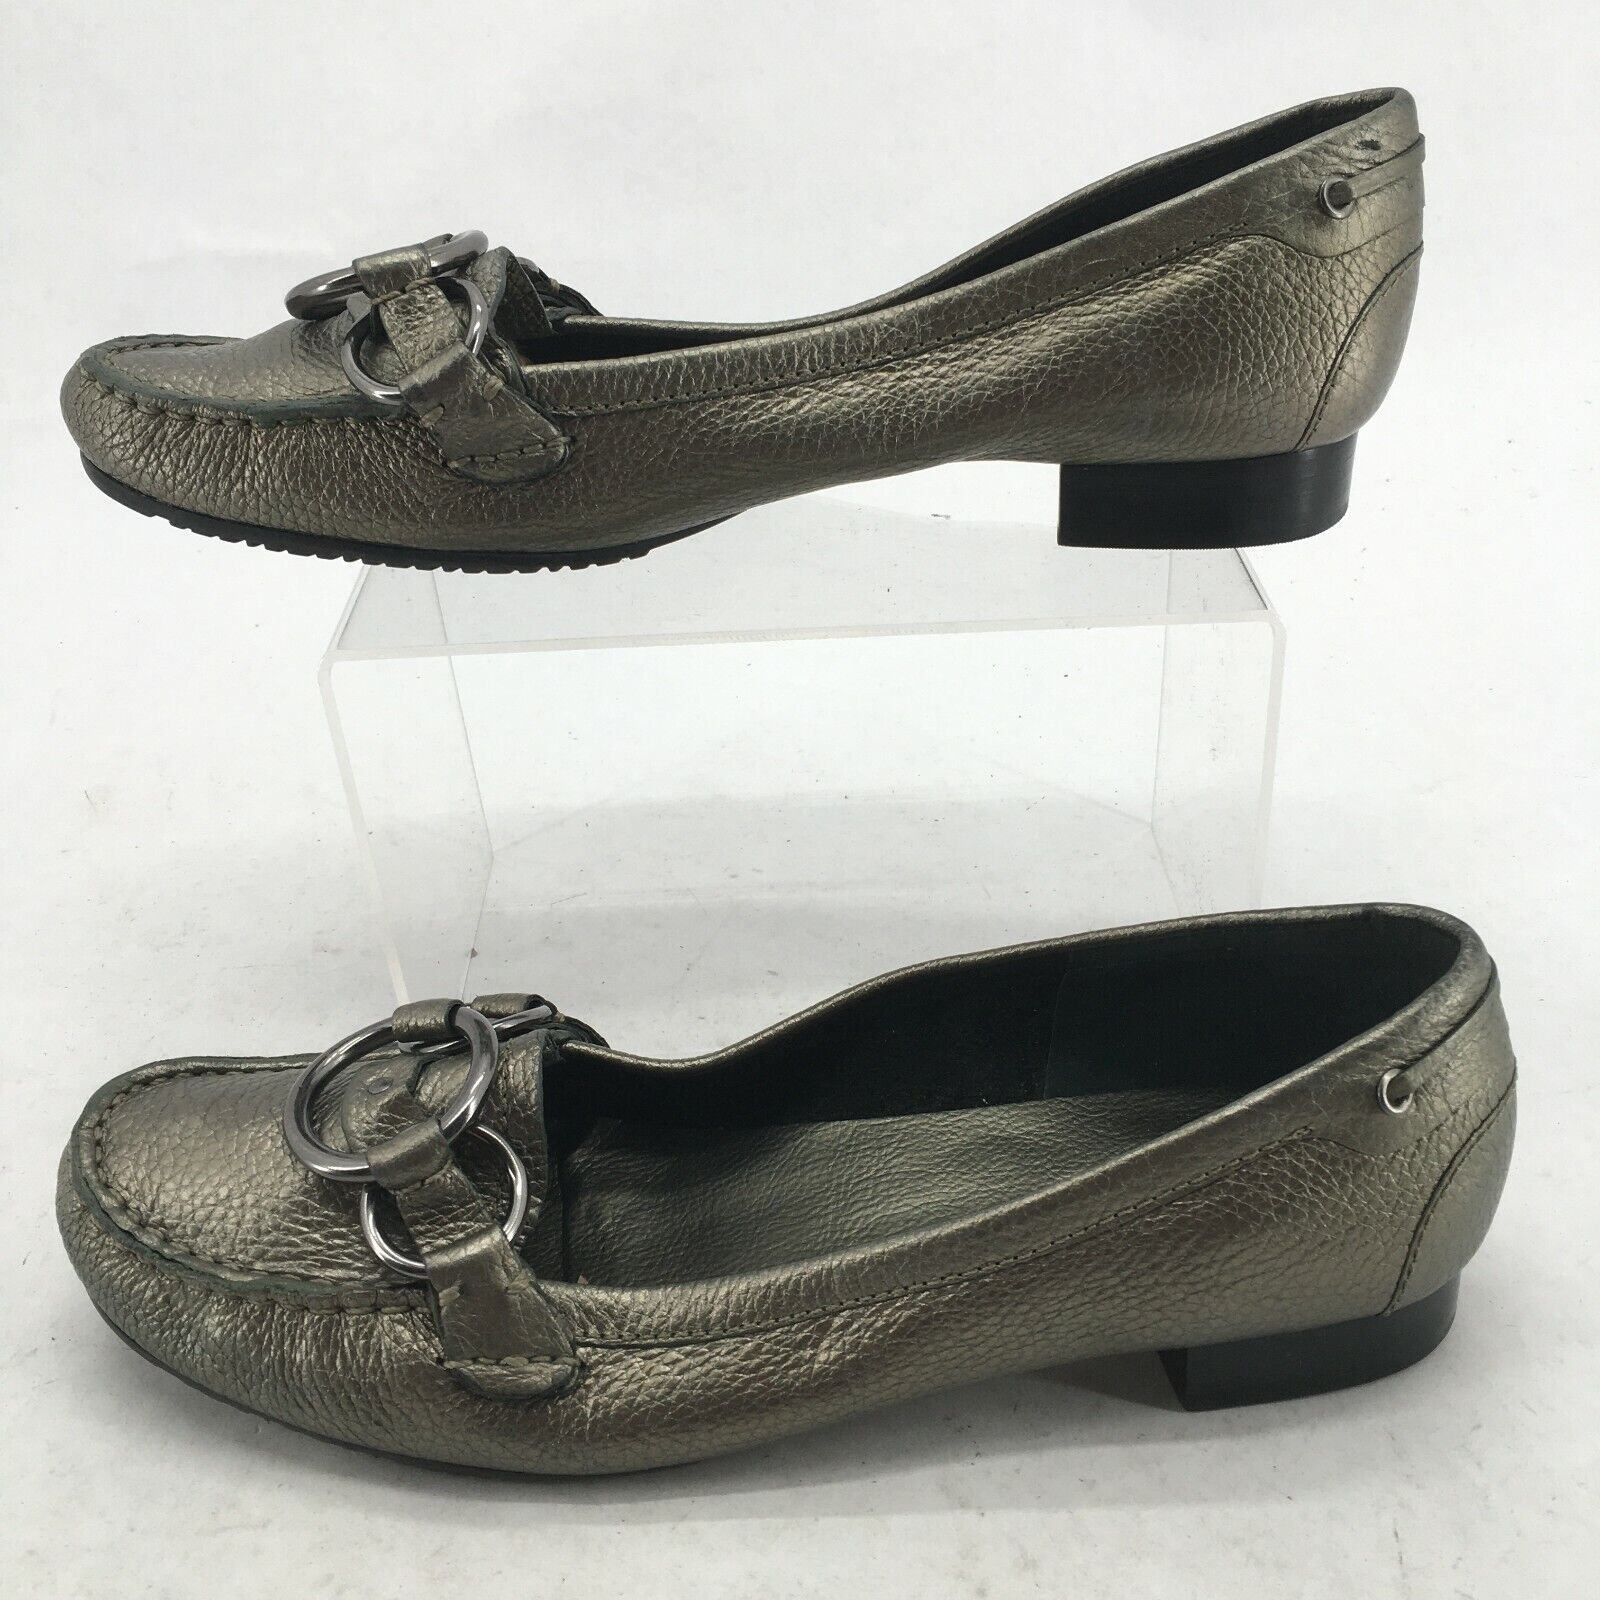 Talbots Womens 9.5B Slip On Moc Toe Loafer Casual Comfort Shoes Bronze Leather